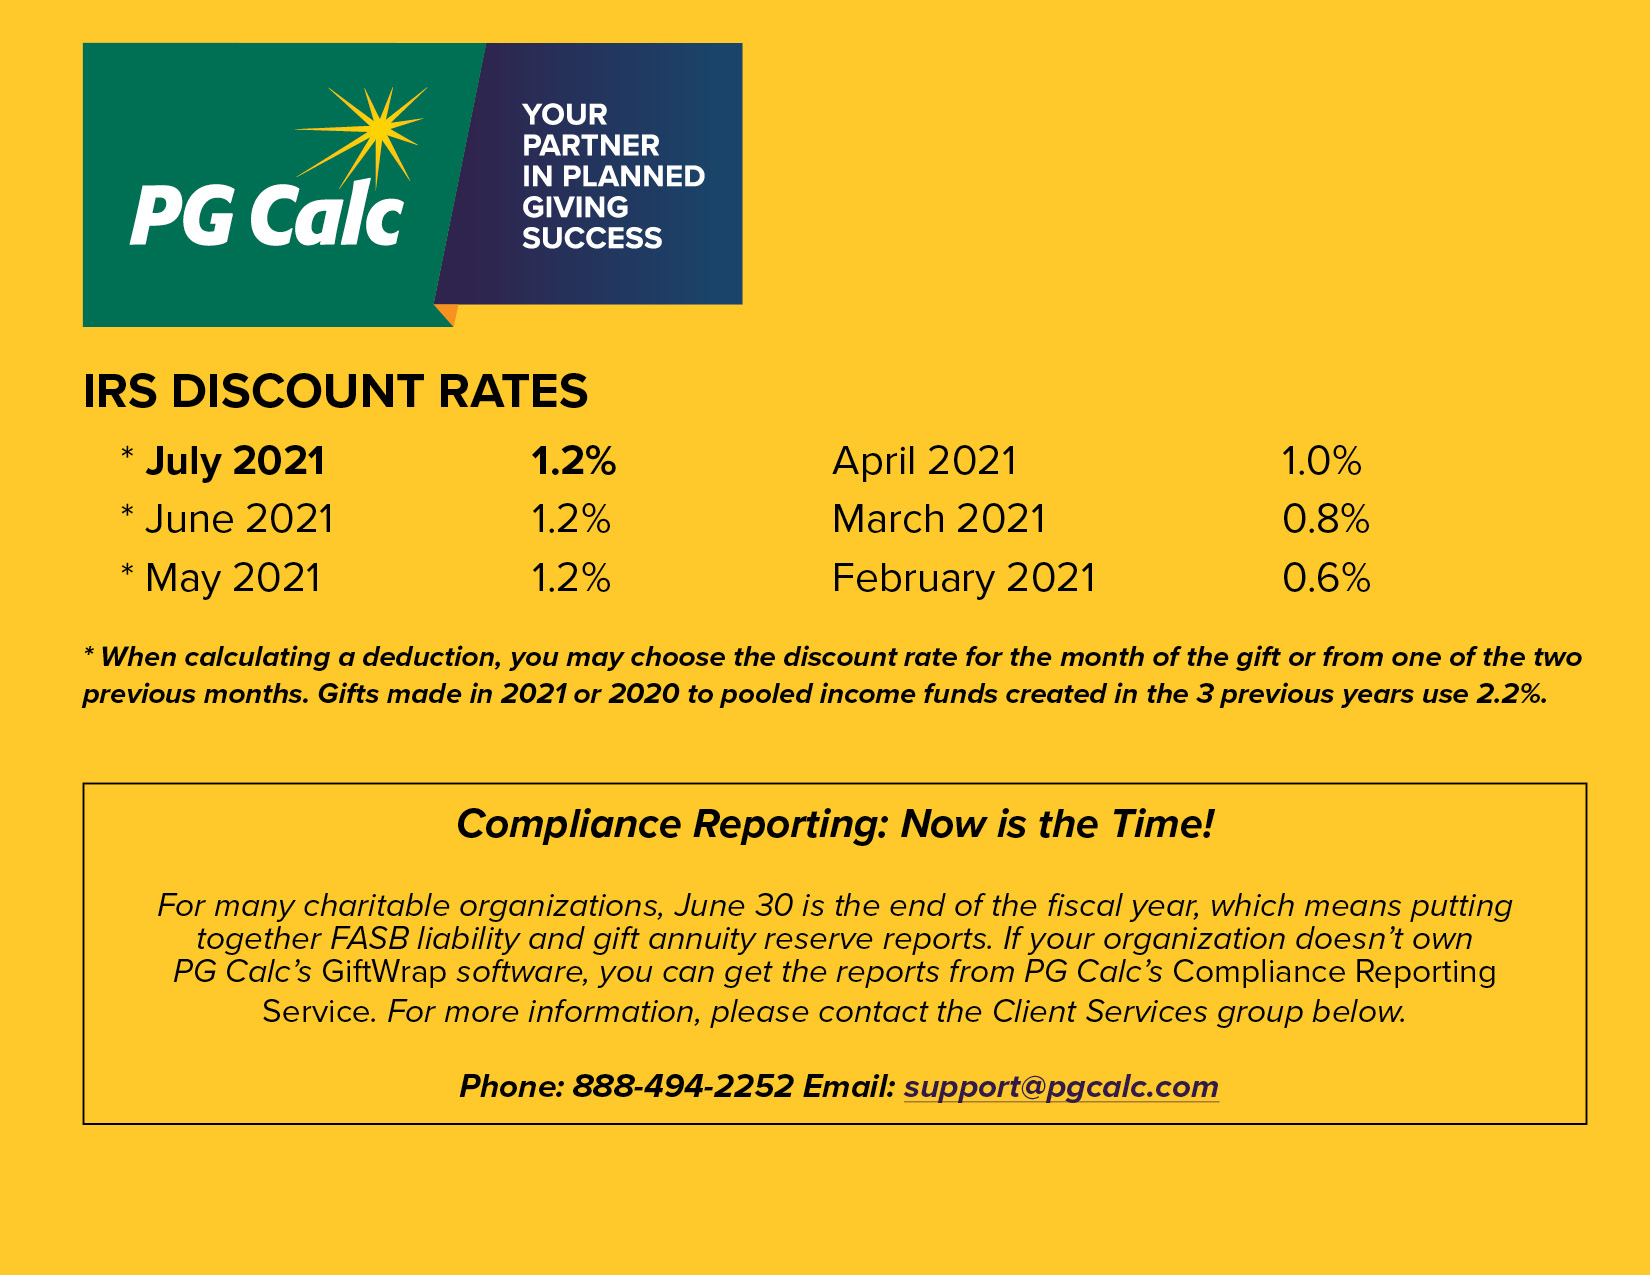 What Is The IRS Discount Rate?